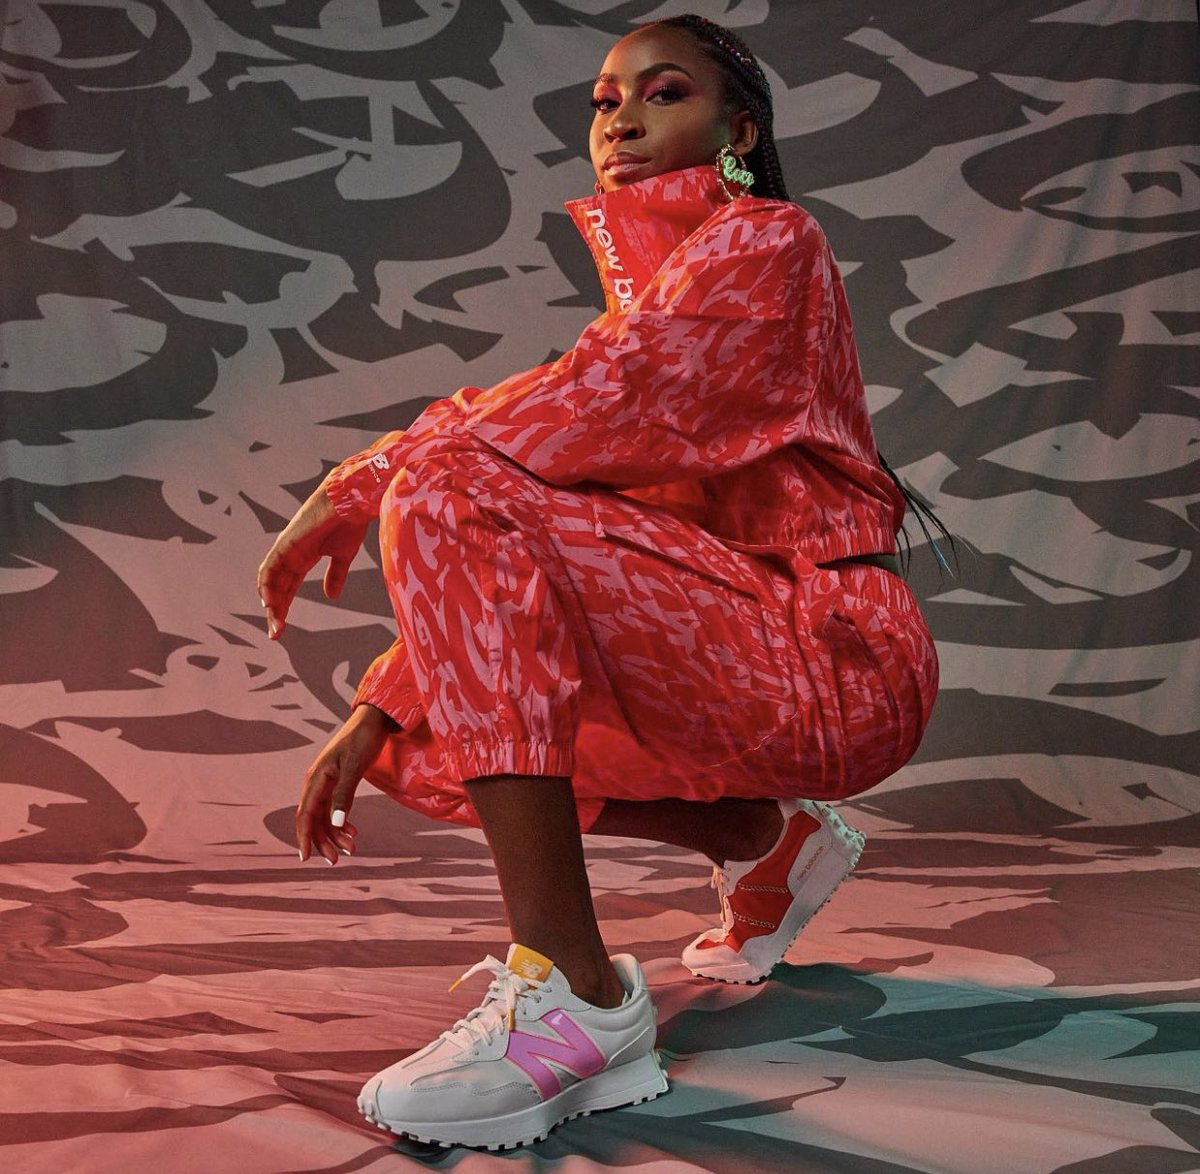 my first collection with new balance is out now!! click the link to shop 💗💗💗 newbalance.com/coco-gauff-col…